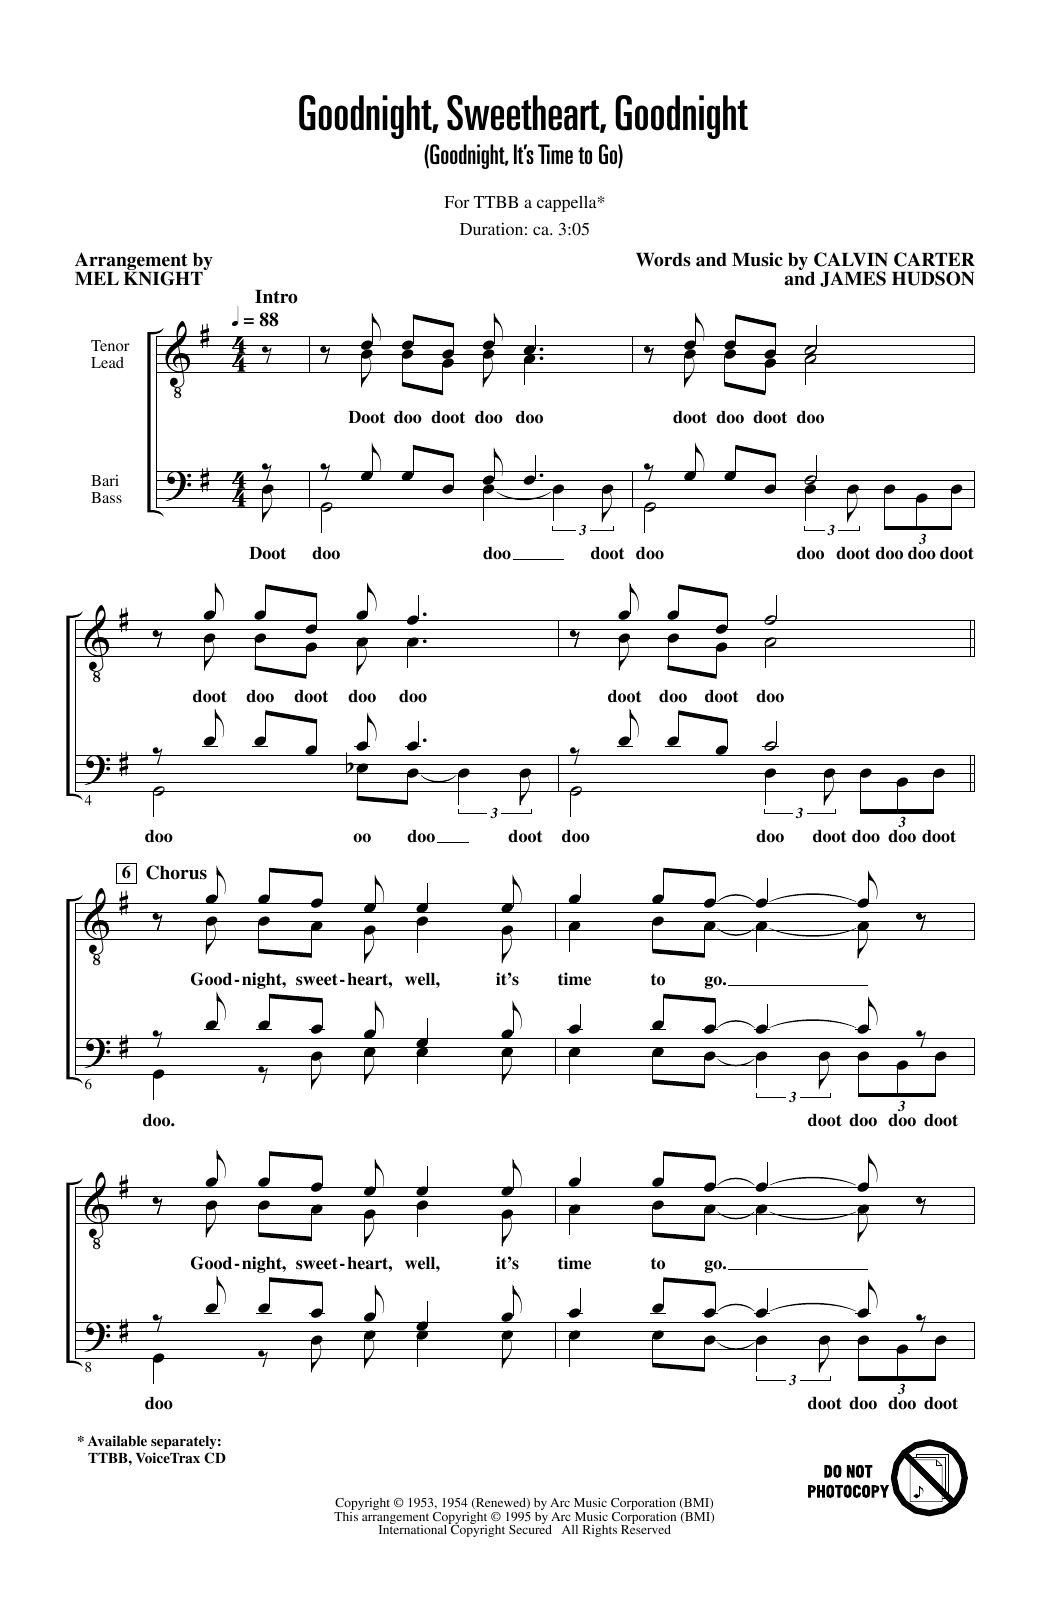 Goodnight, Sweetheart, Goodnight (Goodnight, It's Time to Go) (arr. Mel Knight) Partition Digitale